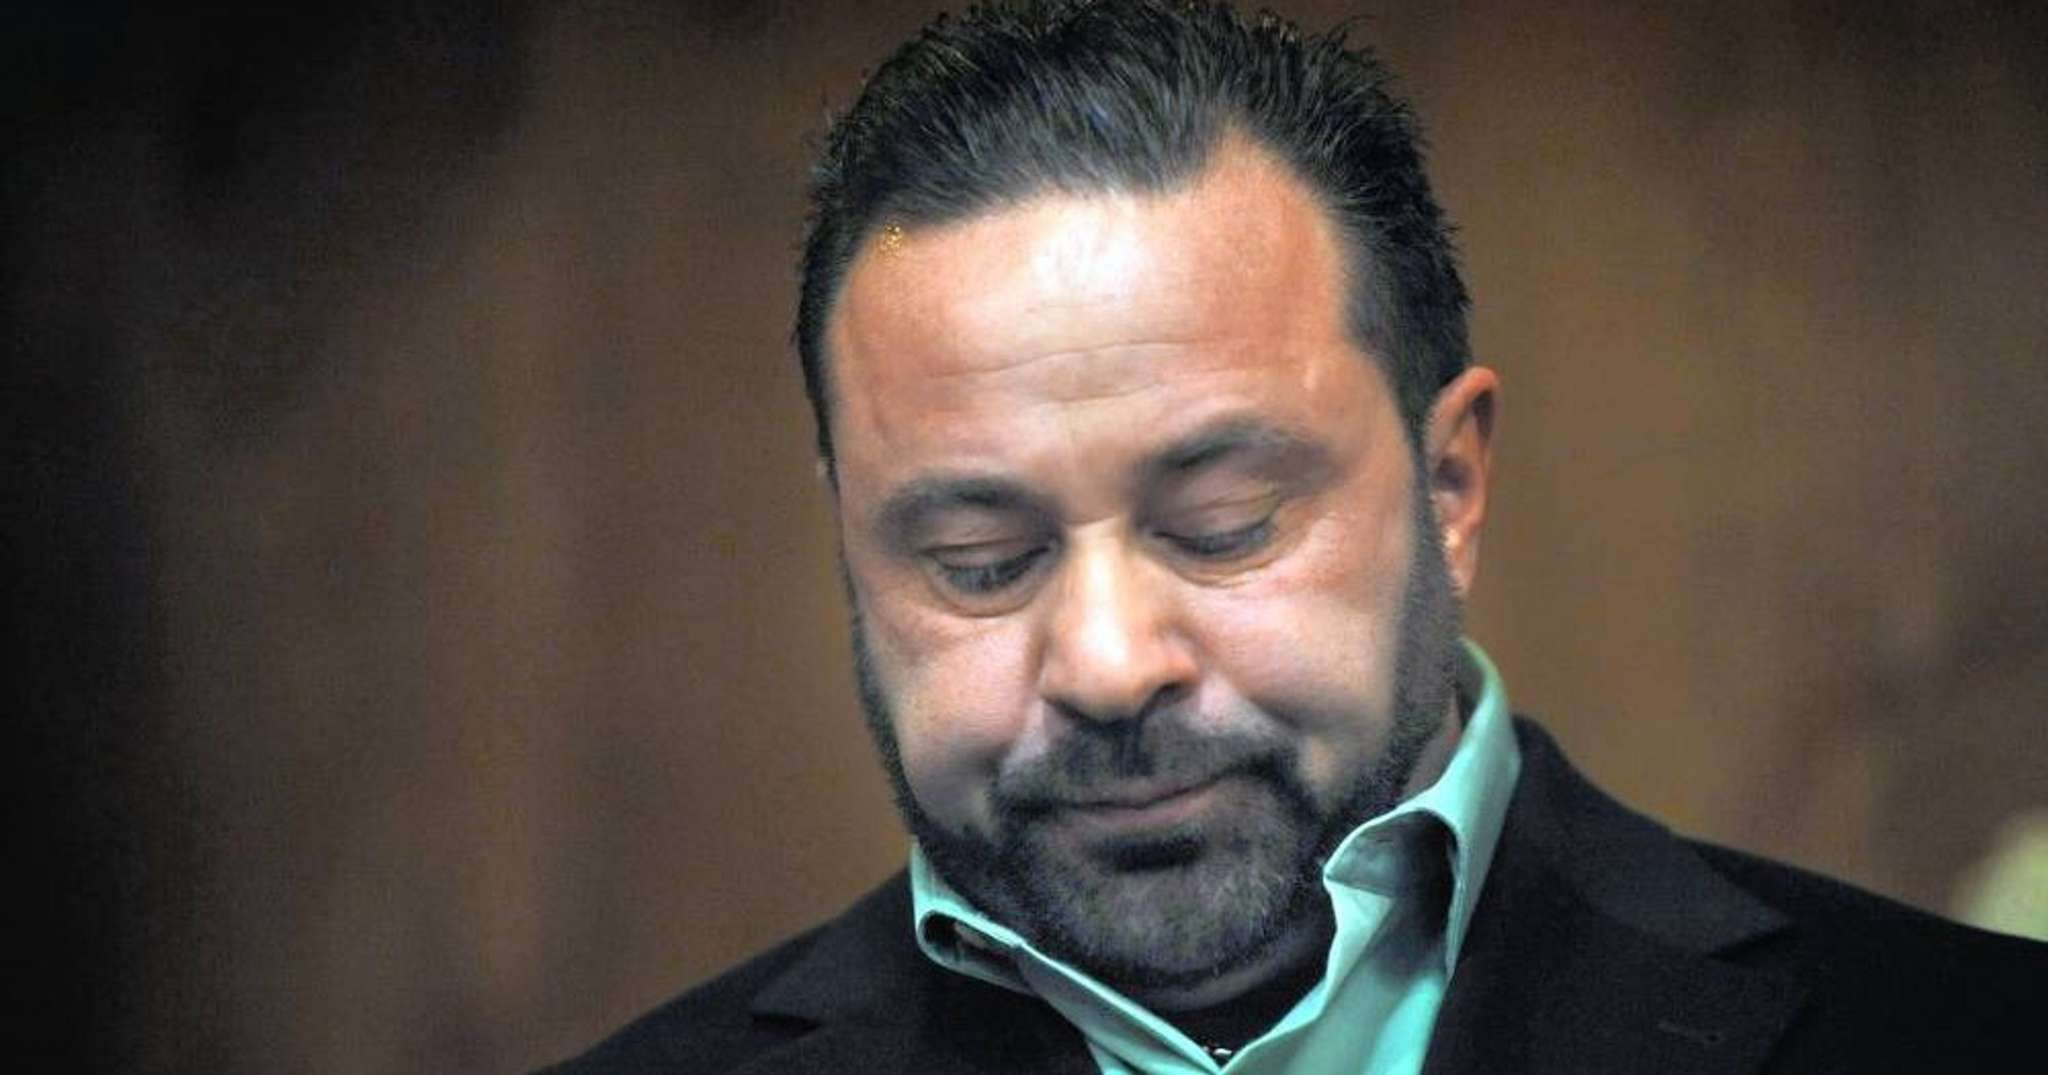 Joe Giudice loses deportation appeal: What's next